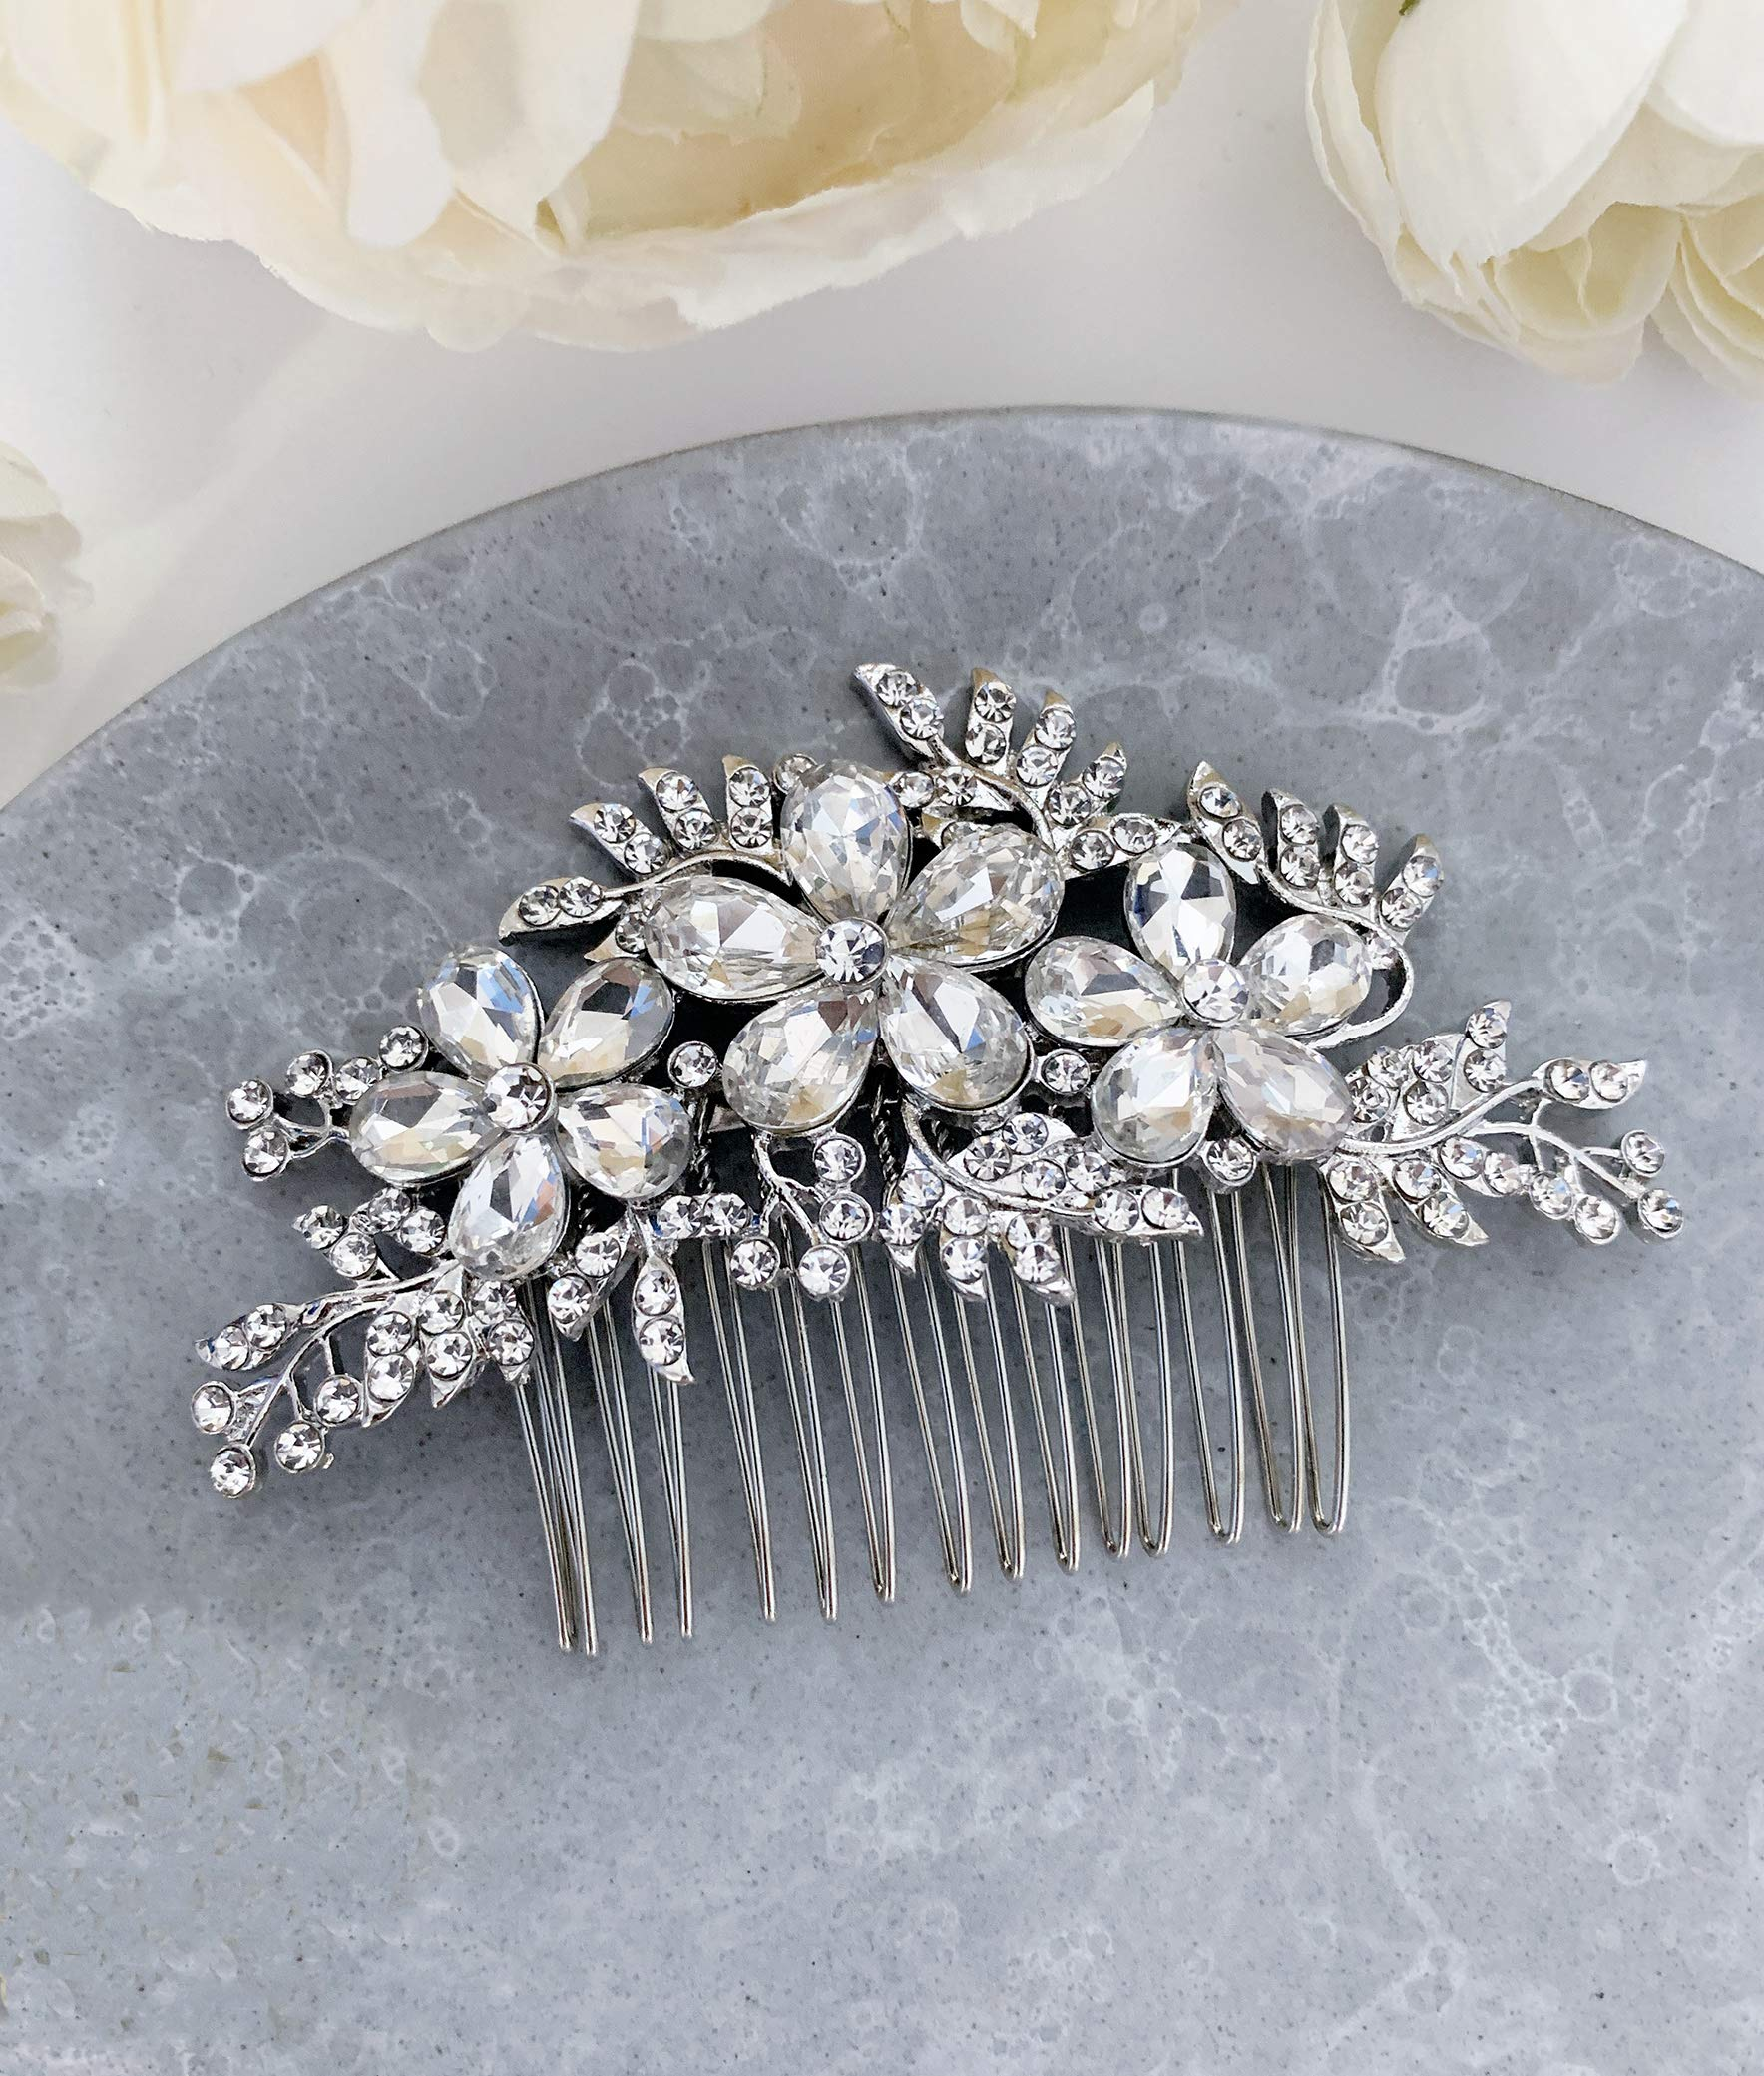 Wedding Hair Accessories Bridal Hair Comb Silver Crystal Rhinestone Elegant Floral Hair Pin Headpiece - For Brides and Bridesmaids - The White Toolbox by The White Toolbox